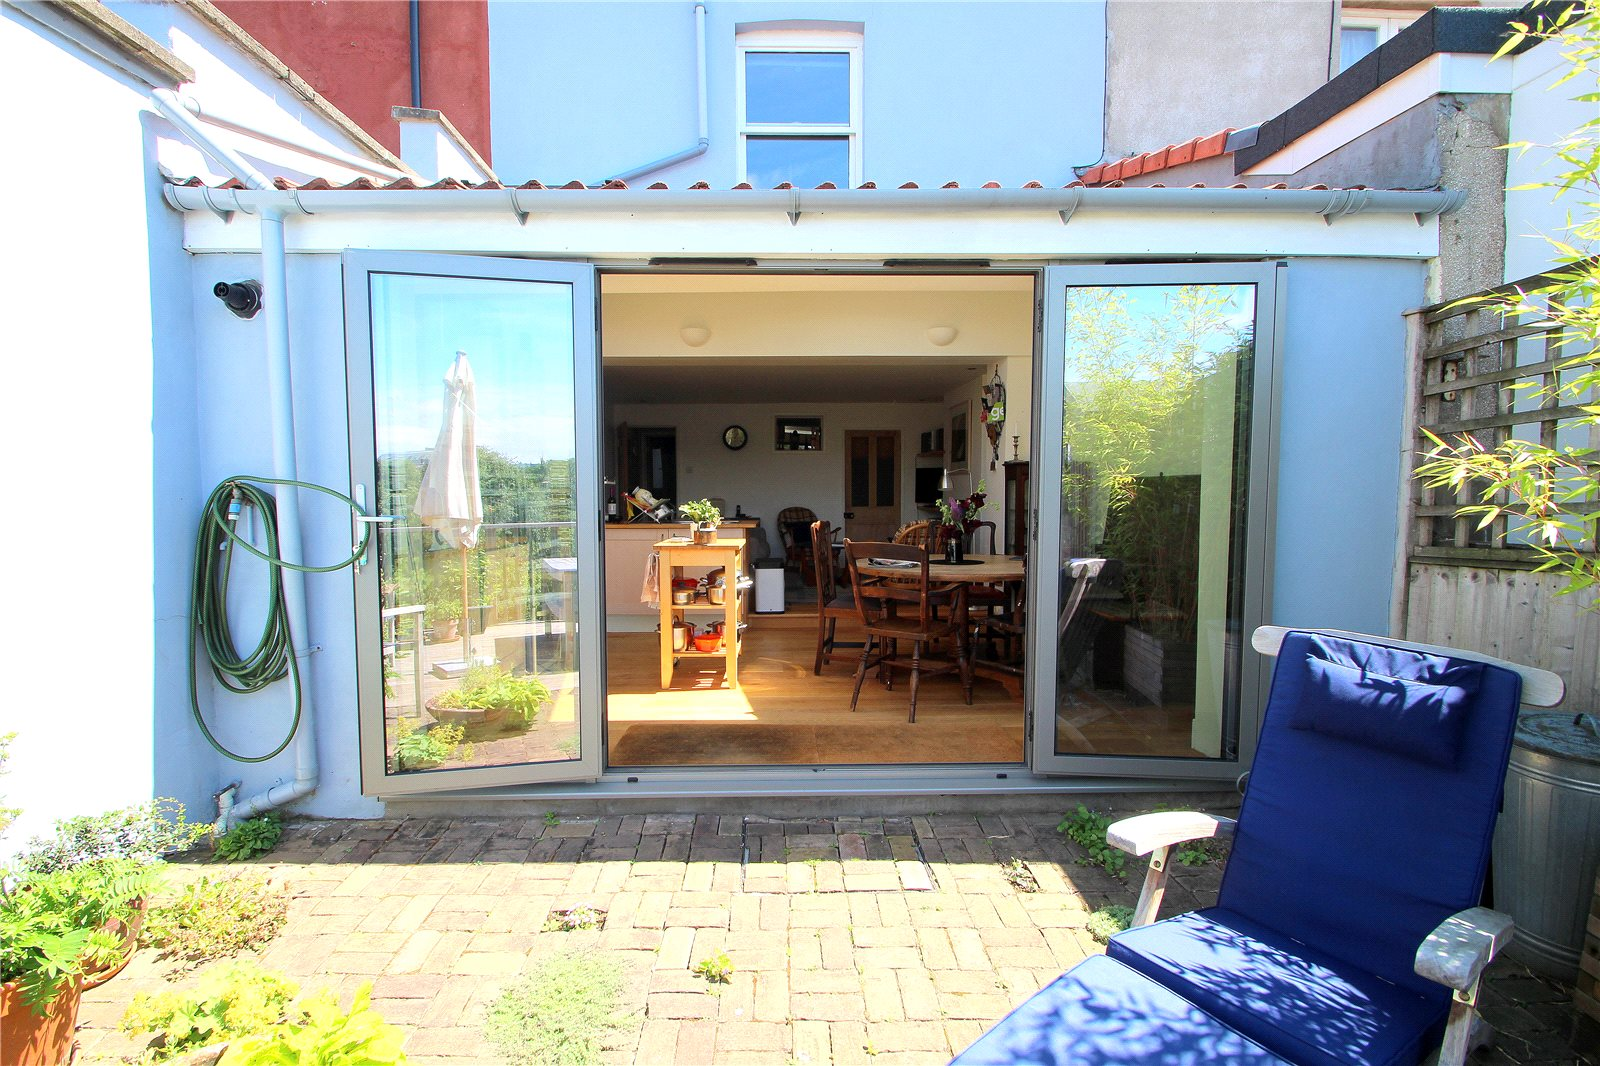 Cj Hole Southville 4 Bedroom House For Sale In Eldon